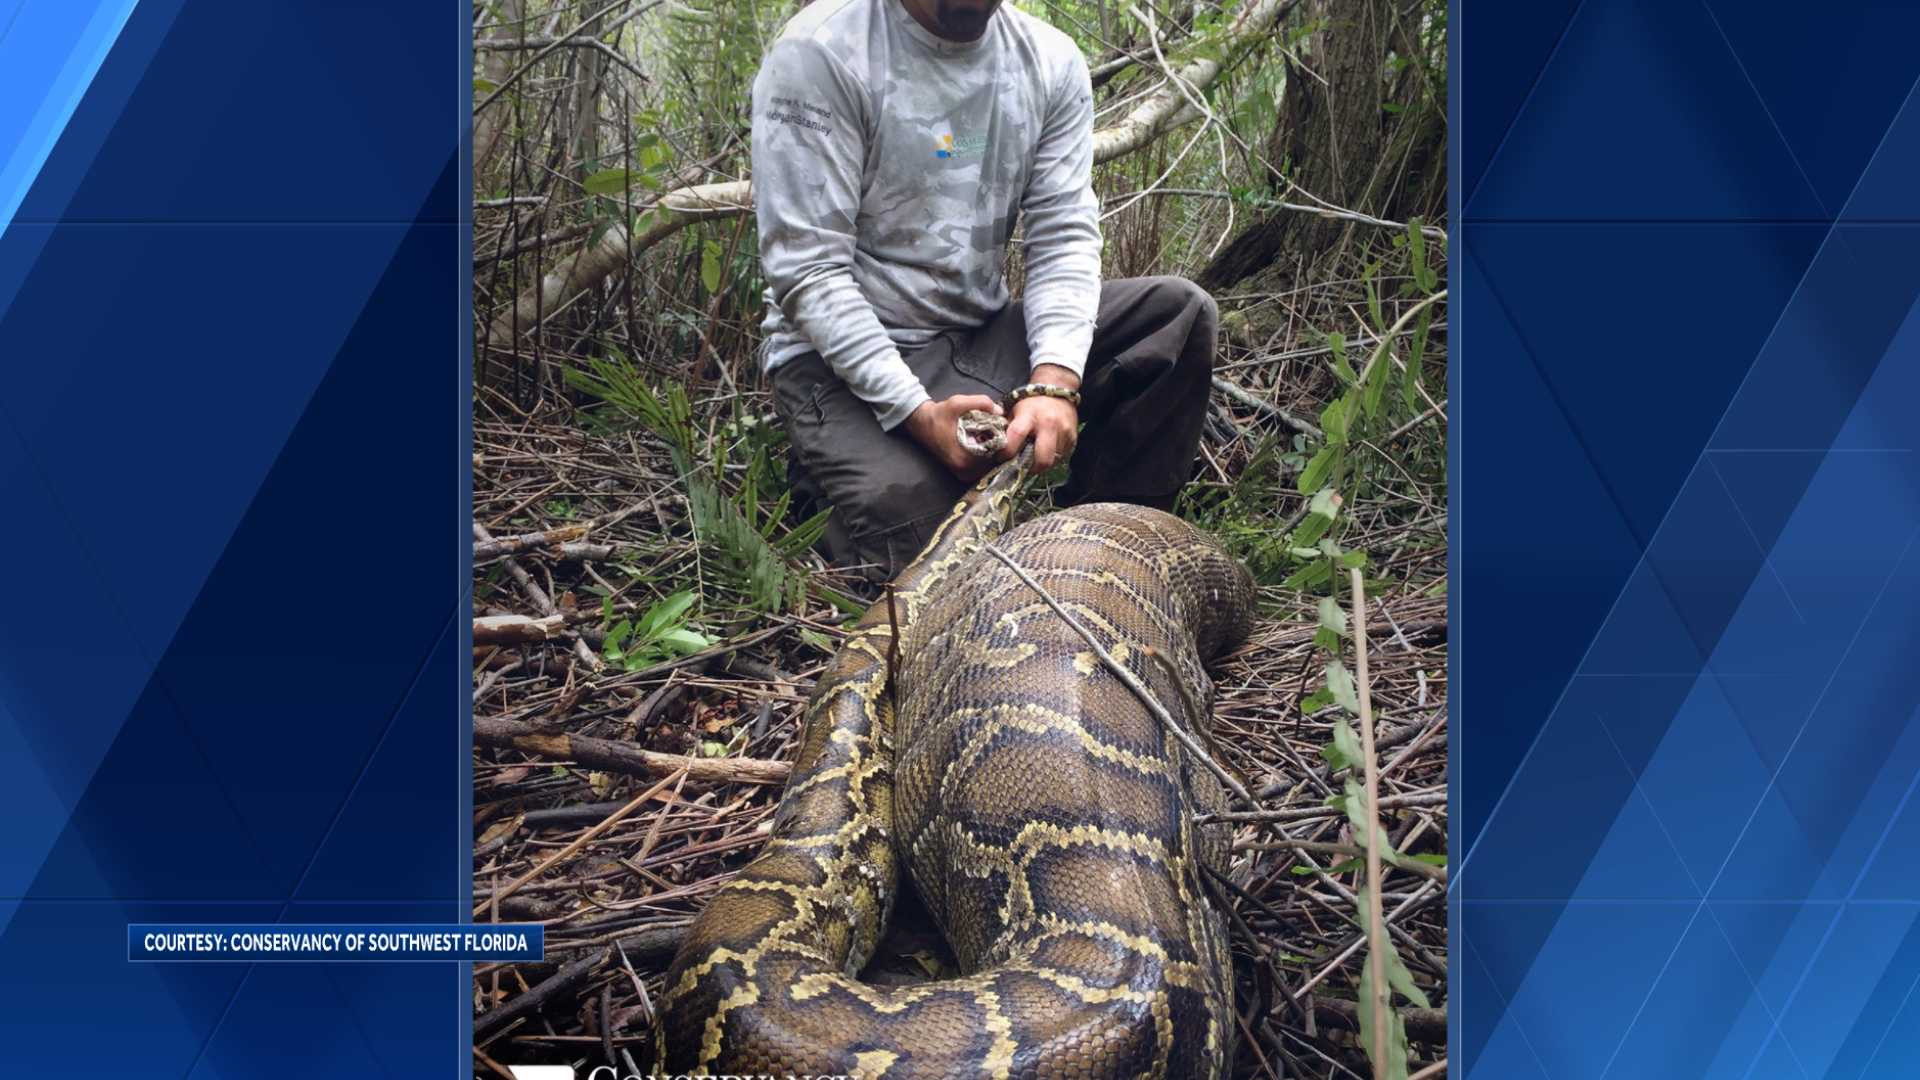 Python Caught Eating Deer in SWFL